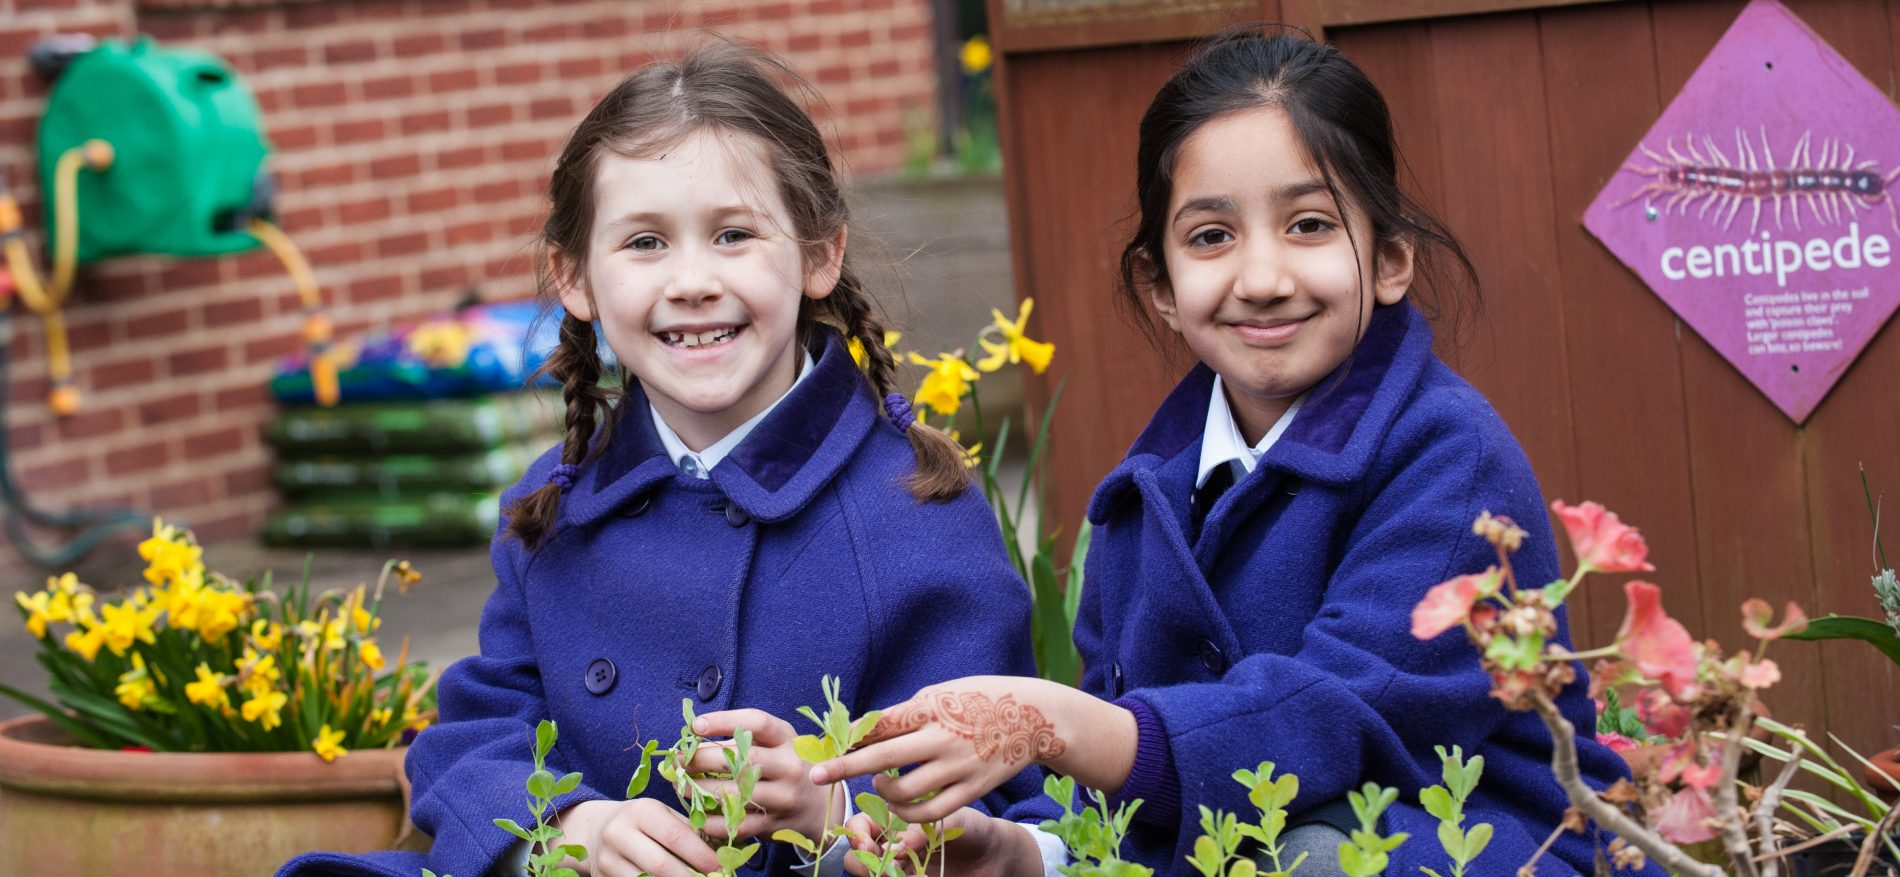 two school girls planting seeds and gardening